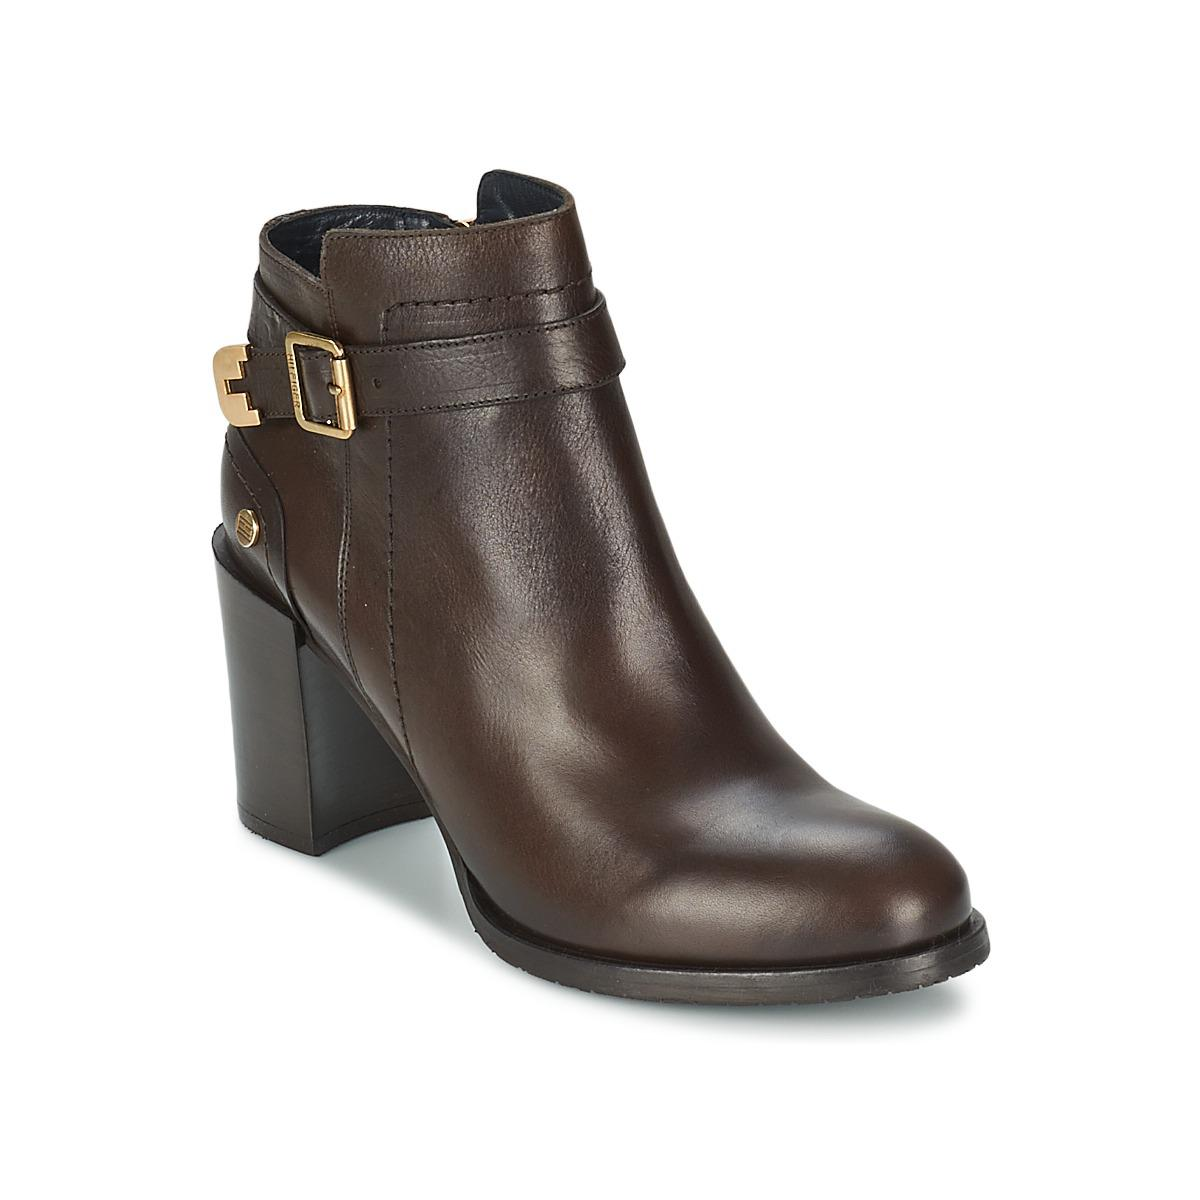 Tommy Hilfiger PENELOPE 4B women's Low Ankle Boots in Low Price For Sale LTipu